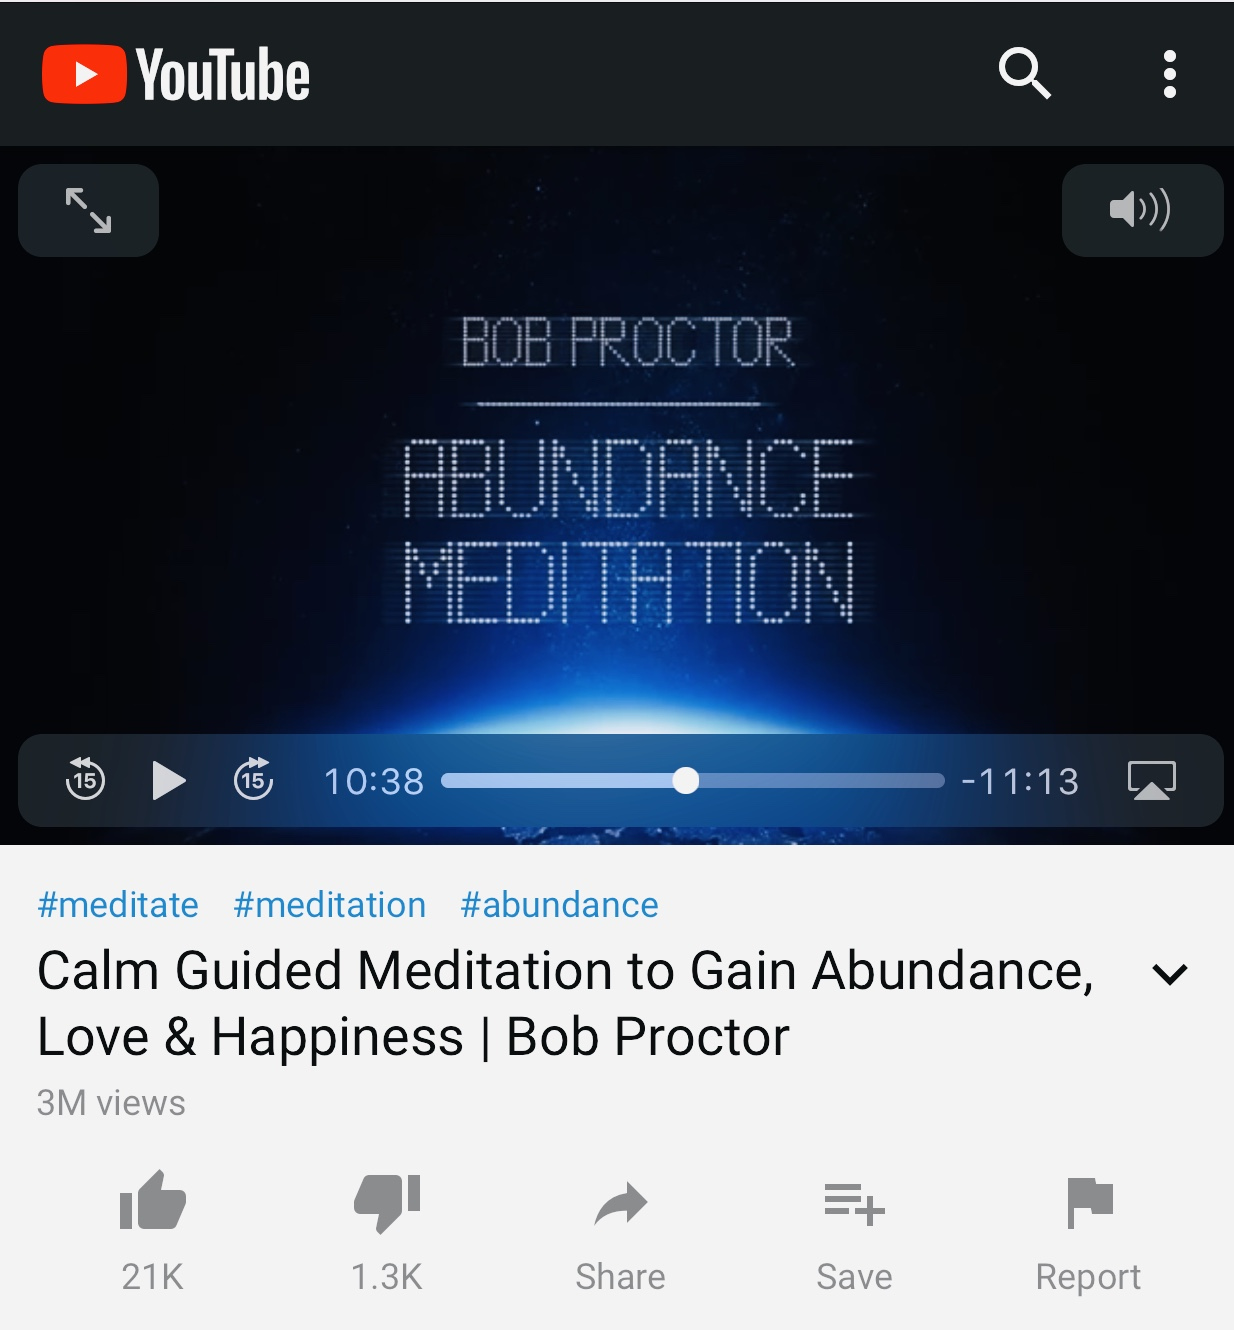 This is the guided mediation I've been listening to recently and I love it. It's so relaxing and uplifting.